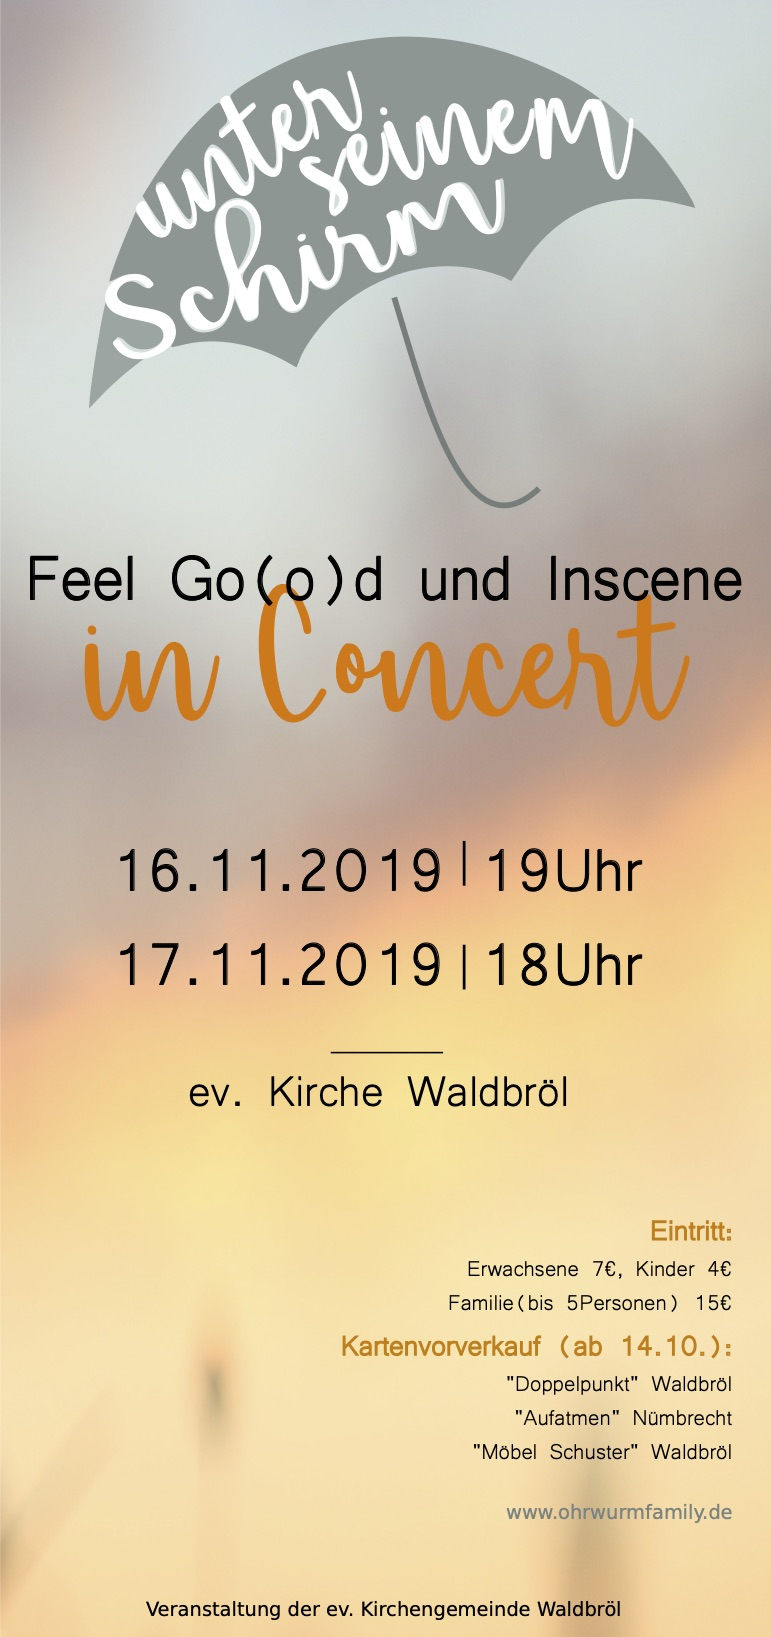 Feel Go(o)d und Inscene in Concert